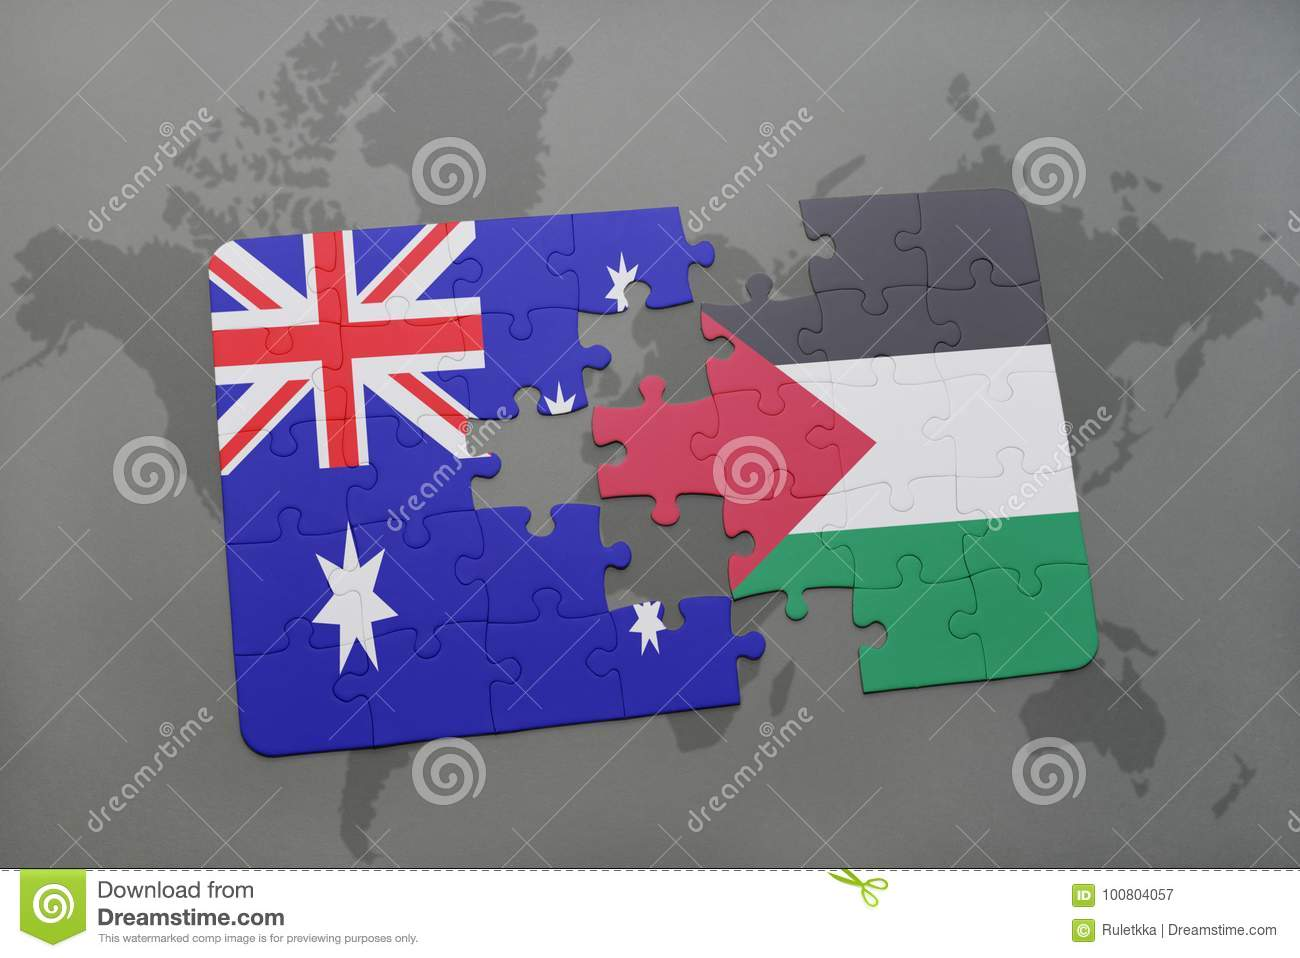 Map Of Australia Jigsaw Puzzle.Puzzle With The National Flag Of Australia And Palestine On A World